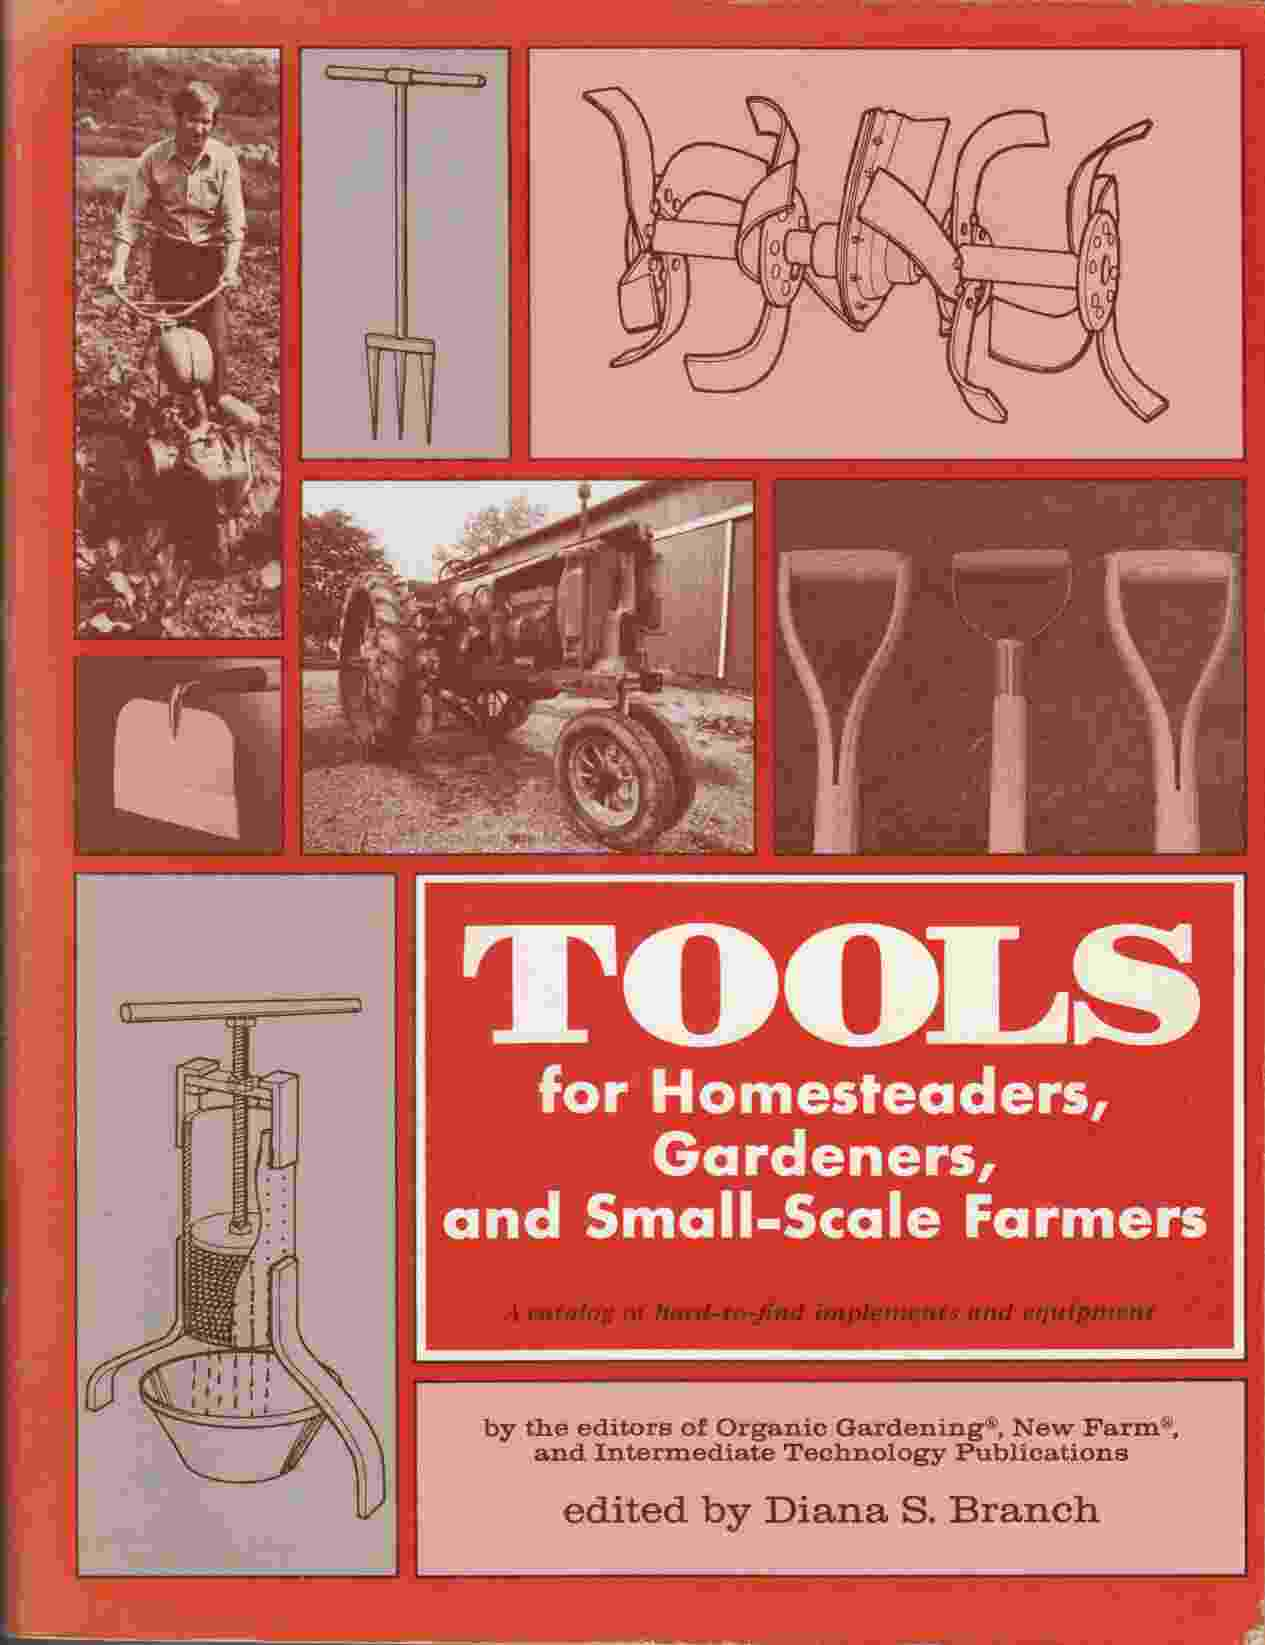 Image for Tools for Homesteaders, Gardeners, and Small-Scale Farmers: A Catalog of Hard-To-Find Implements and Equipment